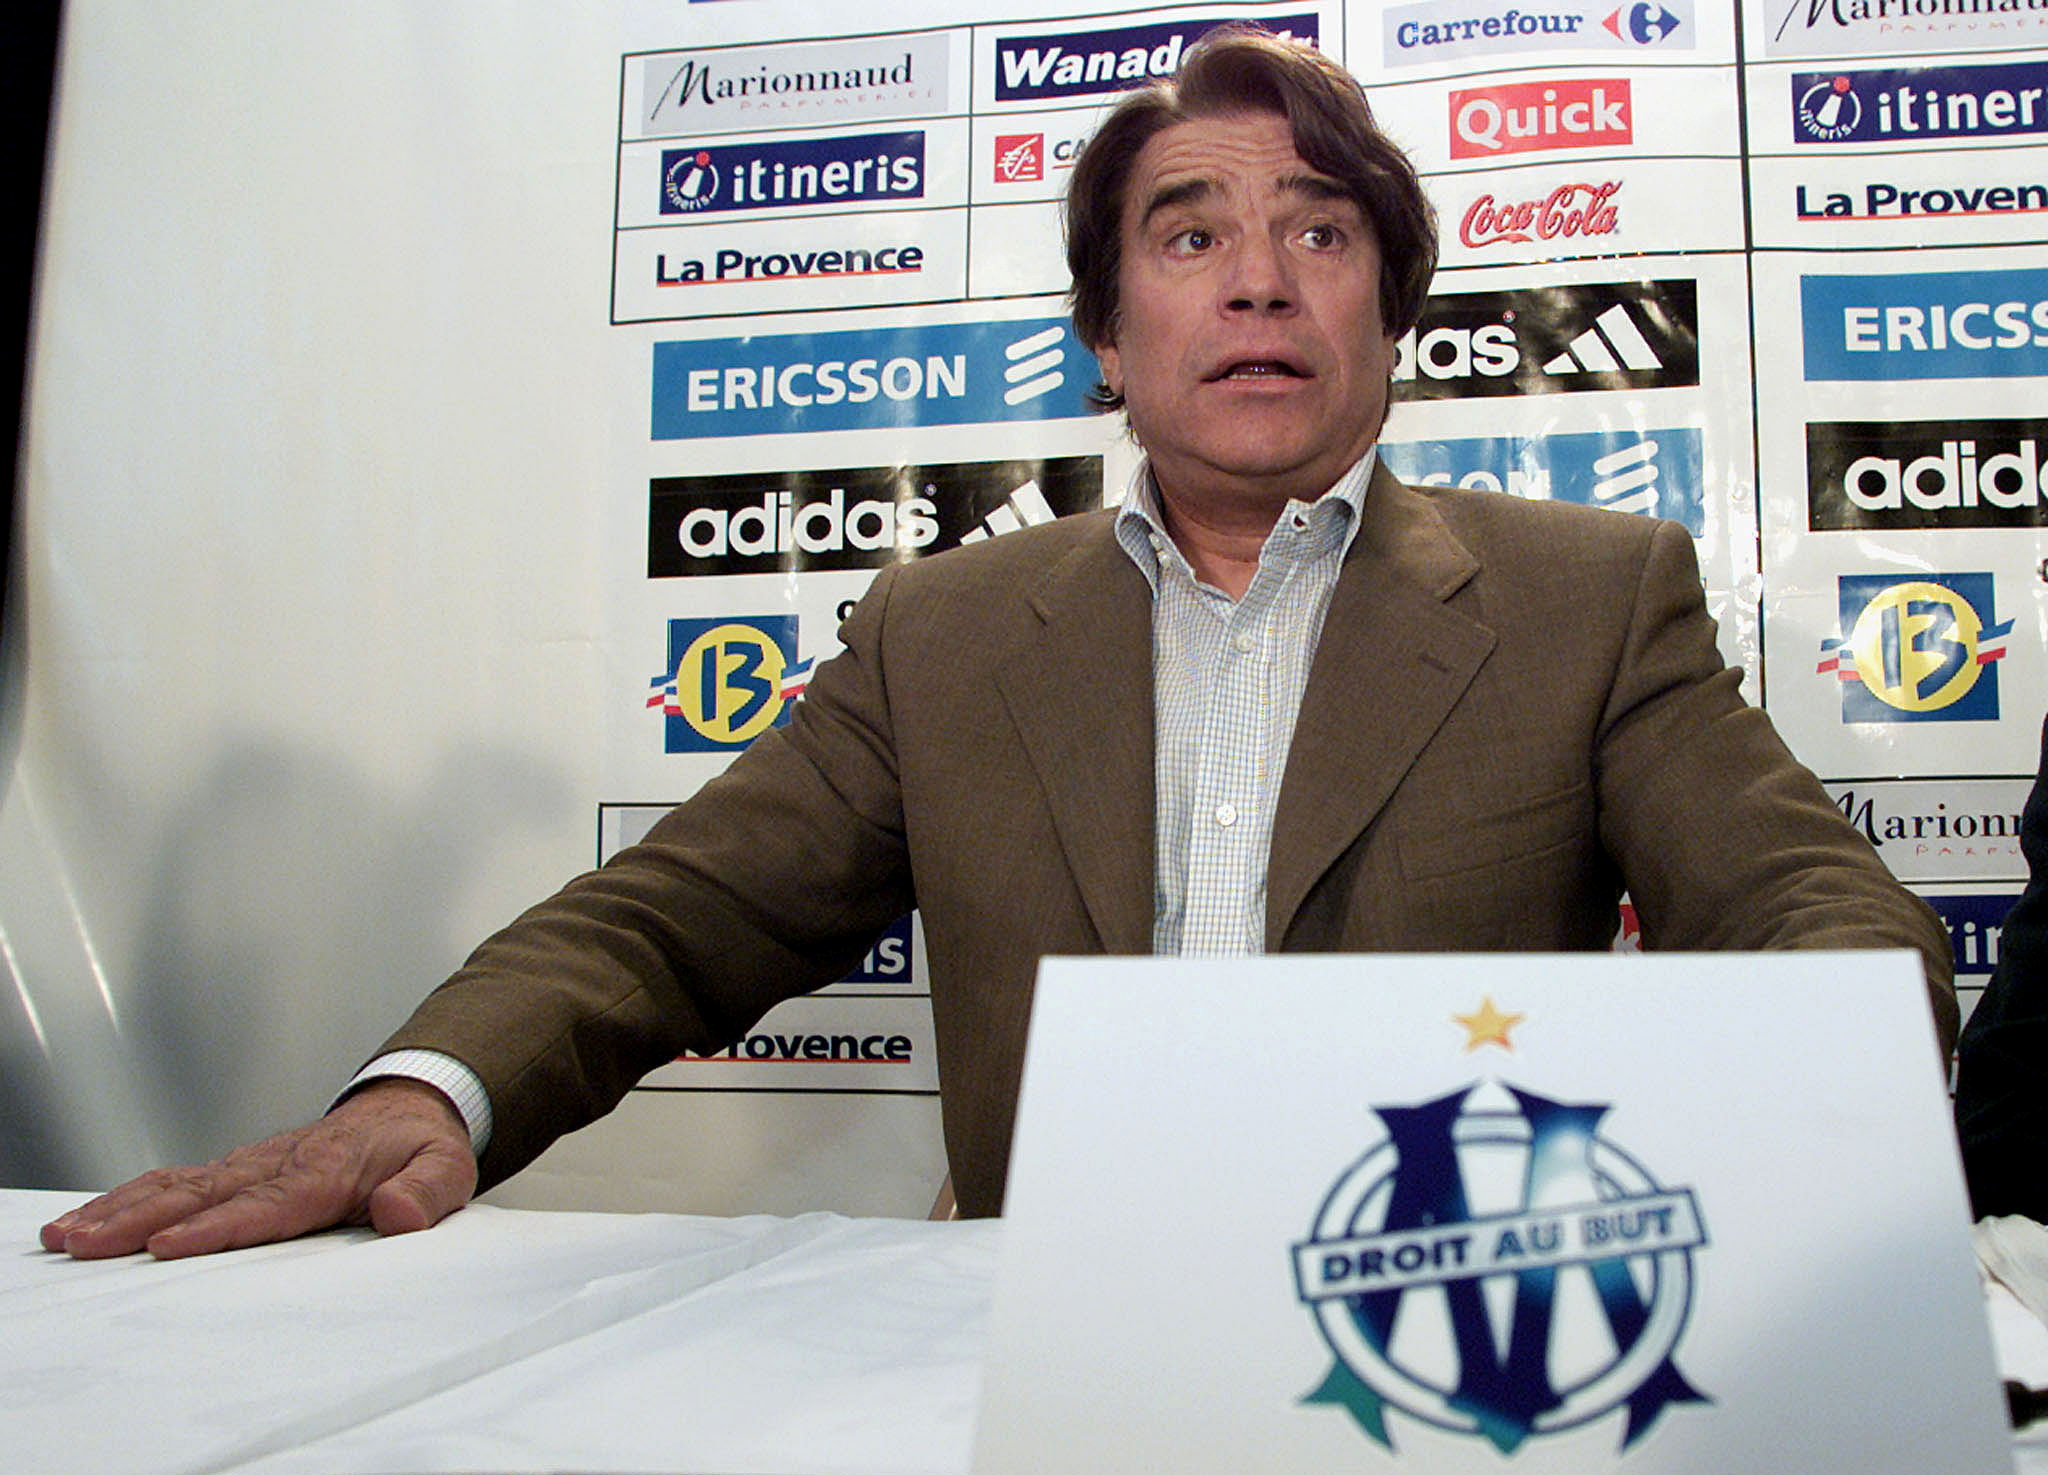 Bernard Tapie, the former chairman of the French soccer team Olympique de Marseille, answers questions during a press conference in Marseille, April 9, 2001. REUTERS/Jean-Paul Pelissier/File Photo